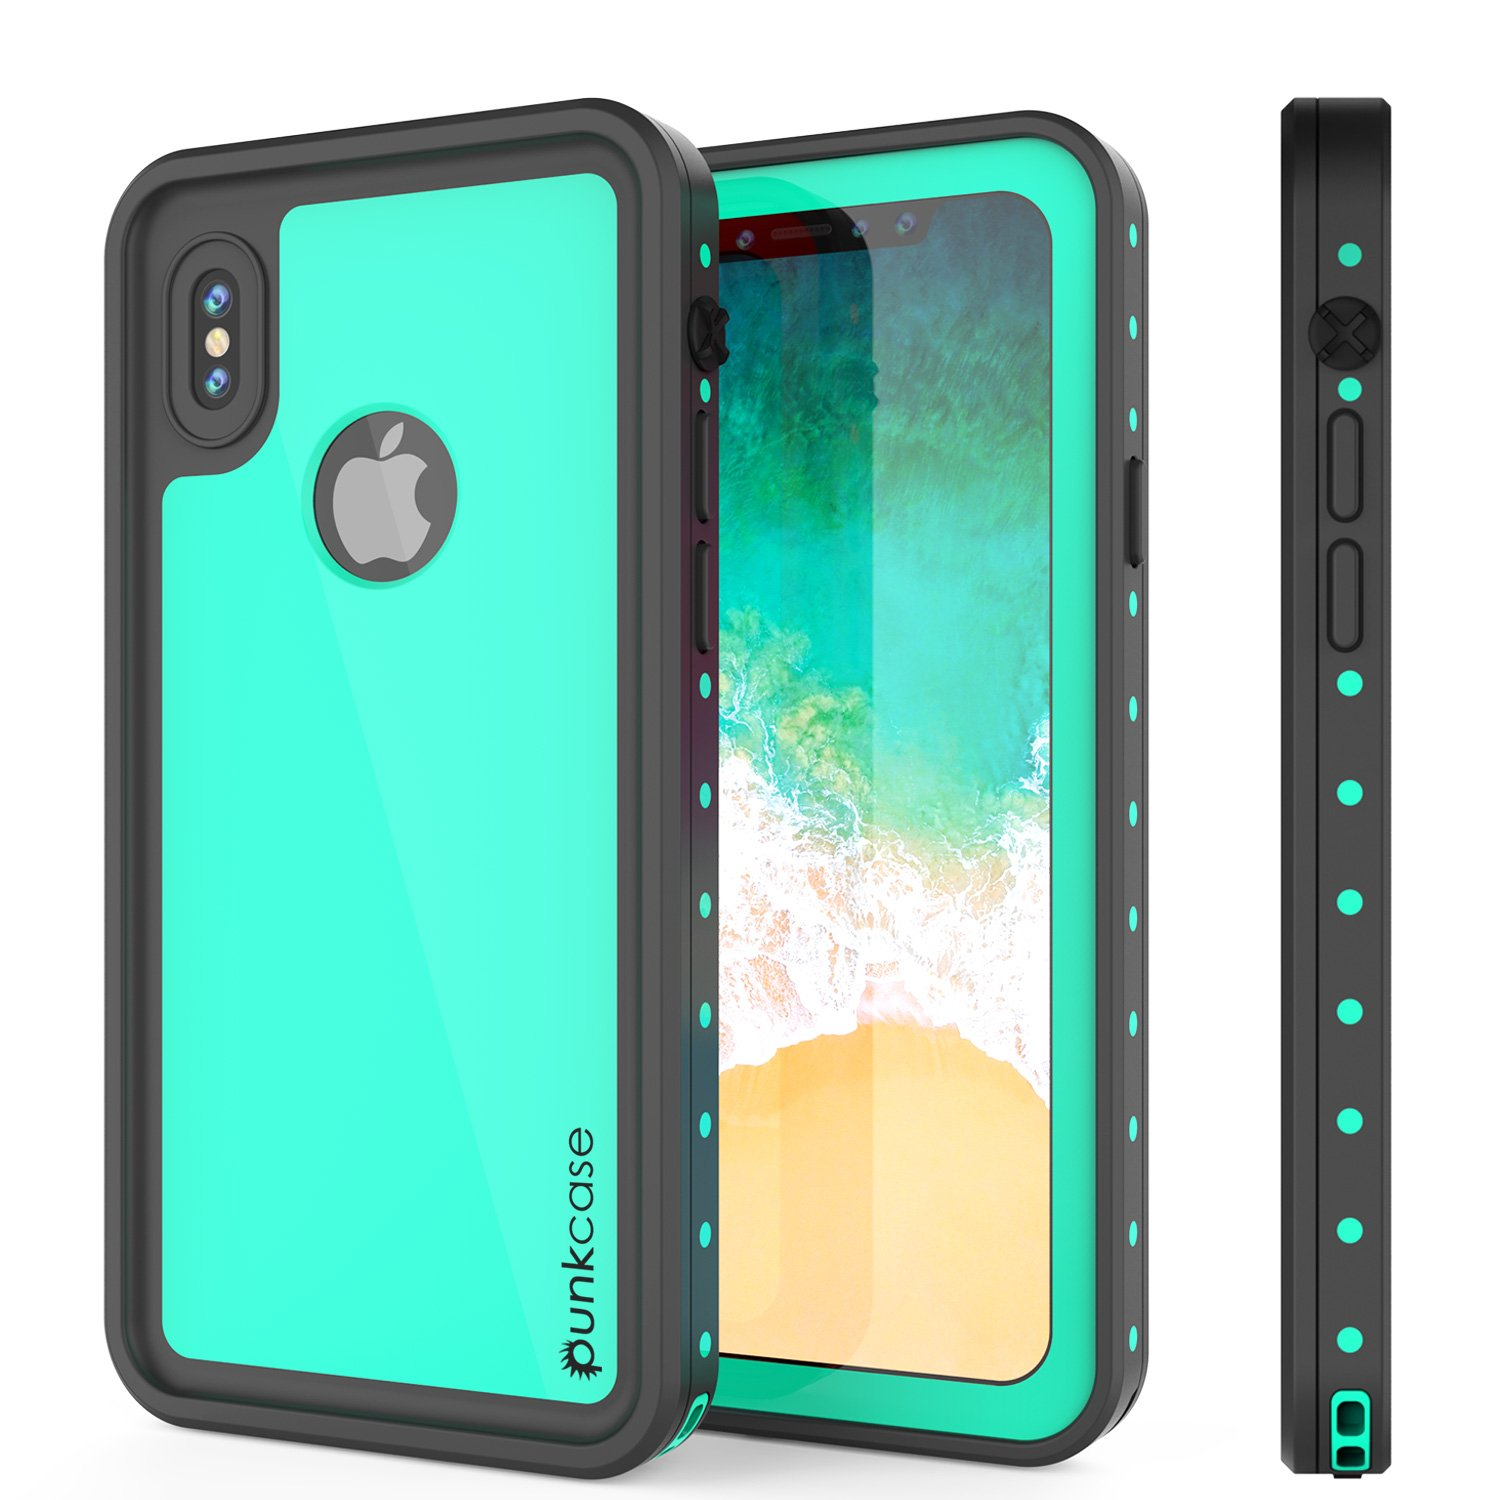 iPhone X Waterproof Case, Punkcase [StudStar Series] [Slim Fit] [IP68 Certified] [Shockproof] [Dirtproof] [Snowproof] Armor Cover for Apple iPhone Ten [Teal]